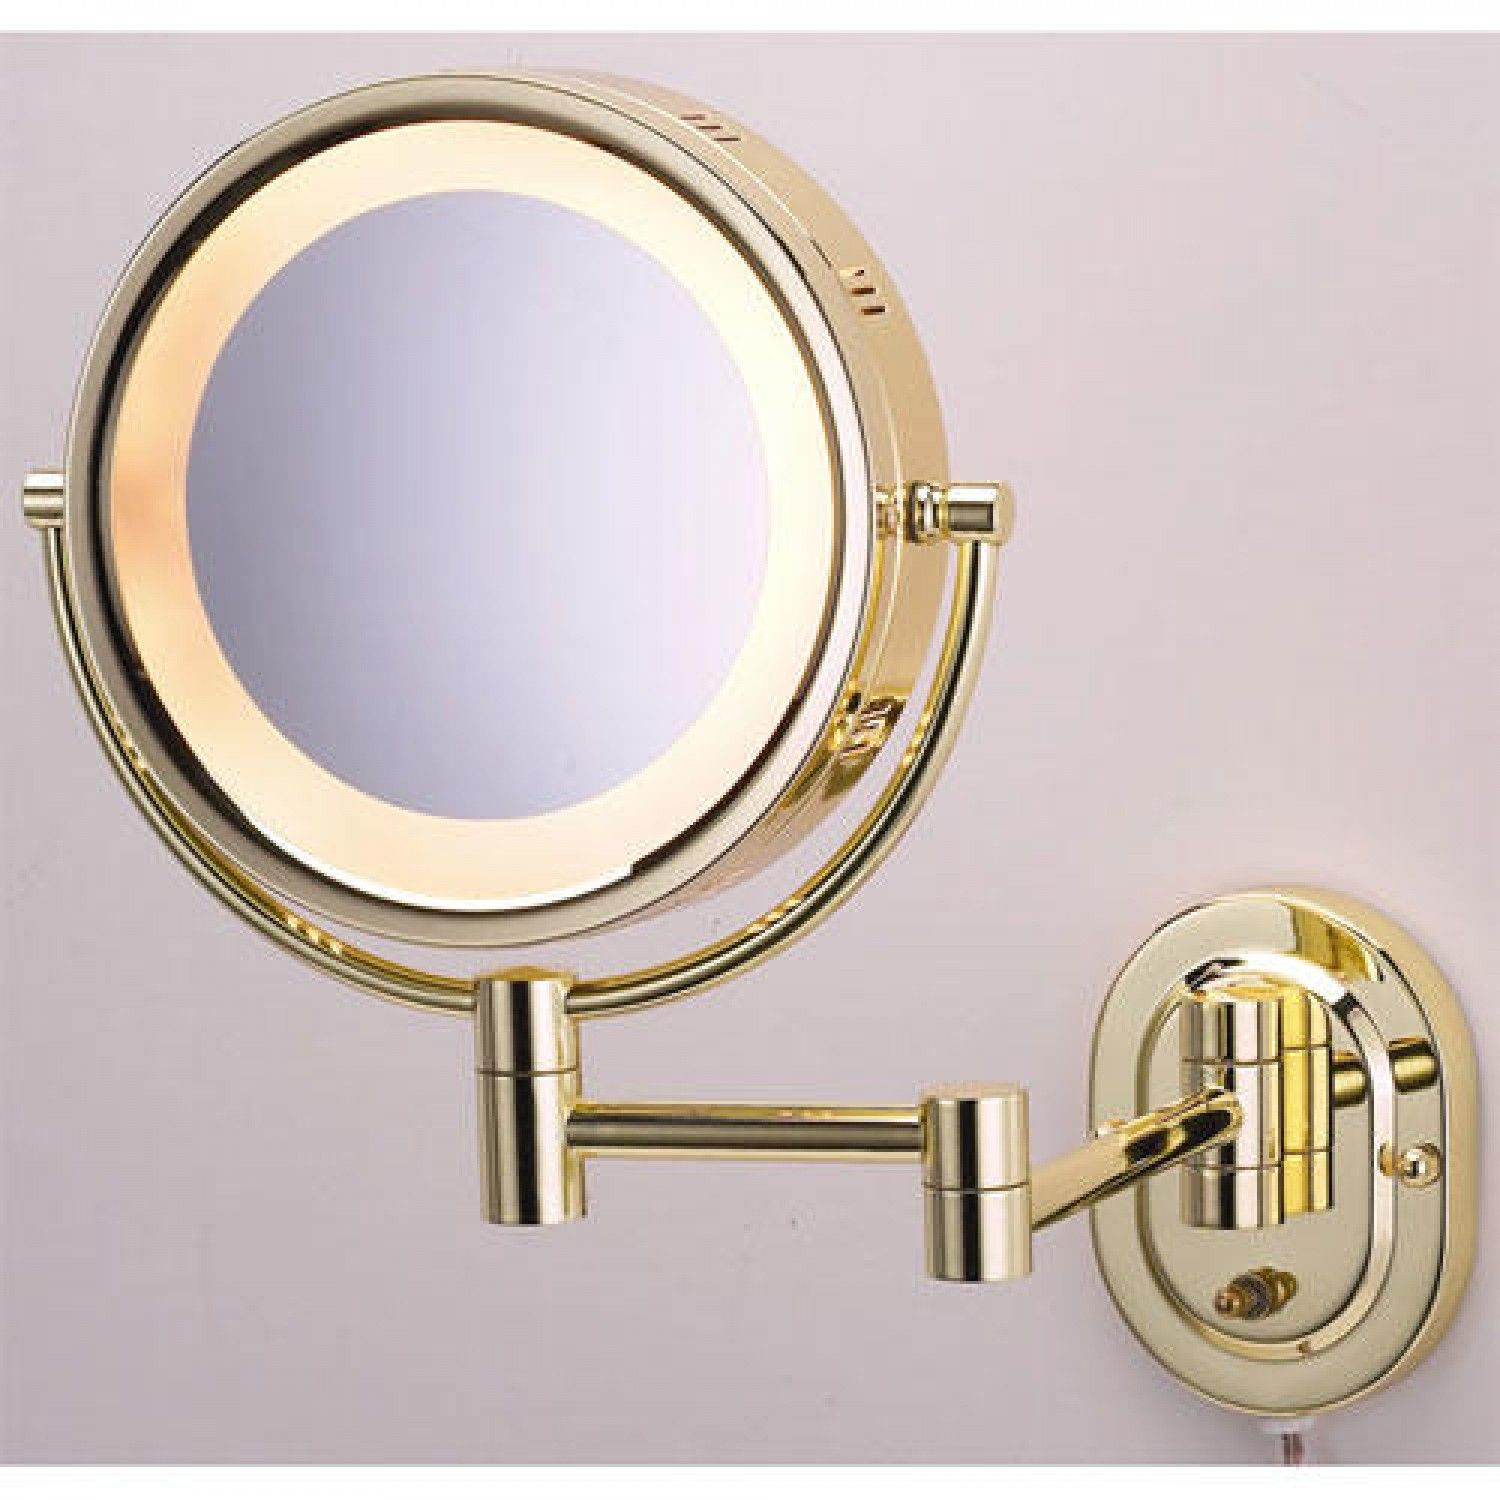 Swinging lighted wall mirror images 341